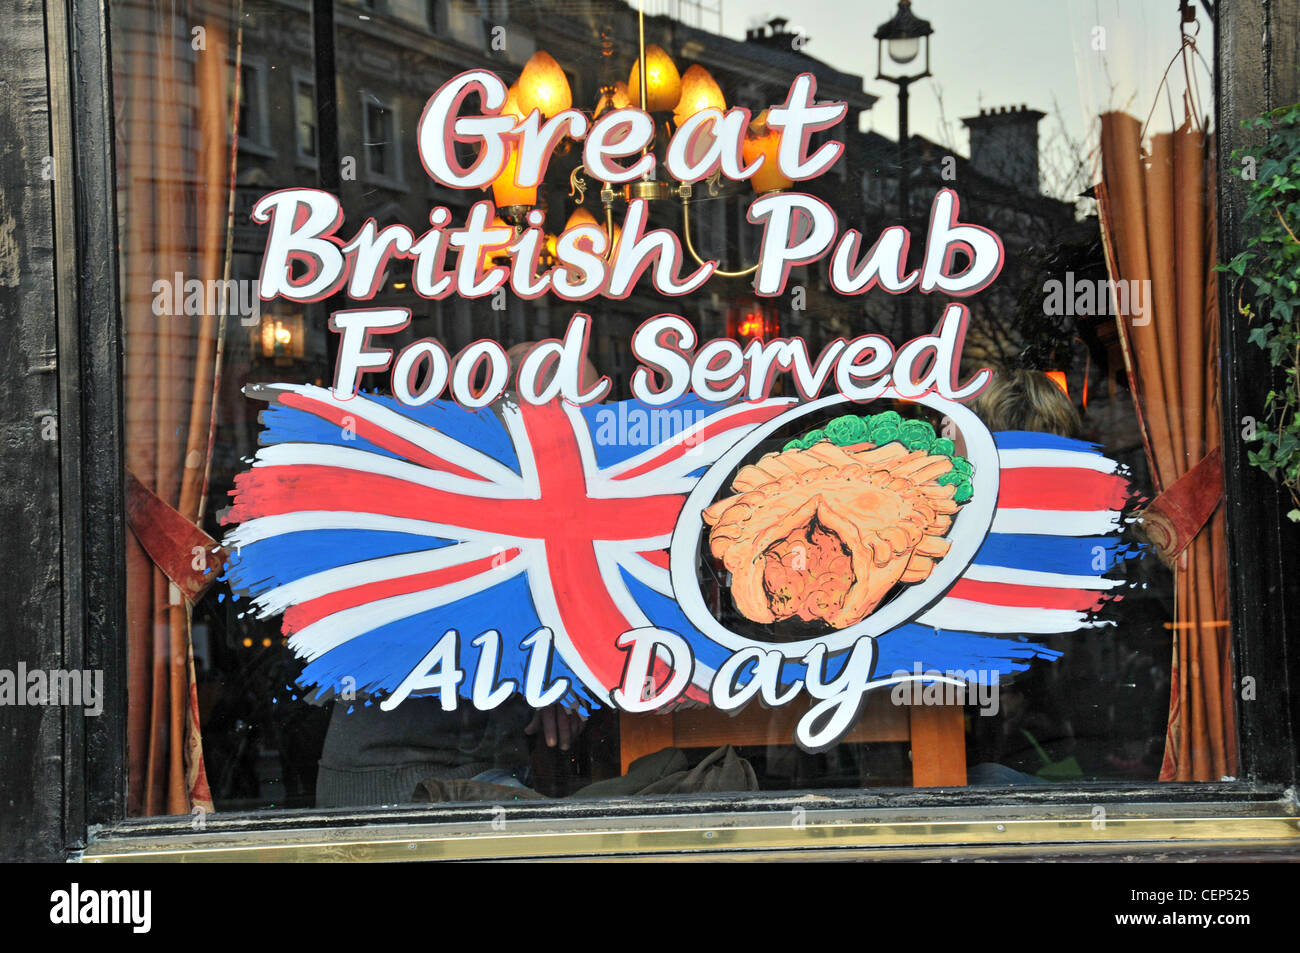 British Pub food all day pub sign English food Union Jack  flag britishness pie - Stock Image